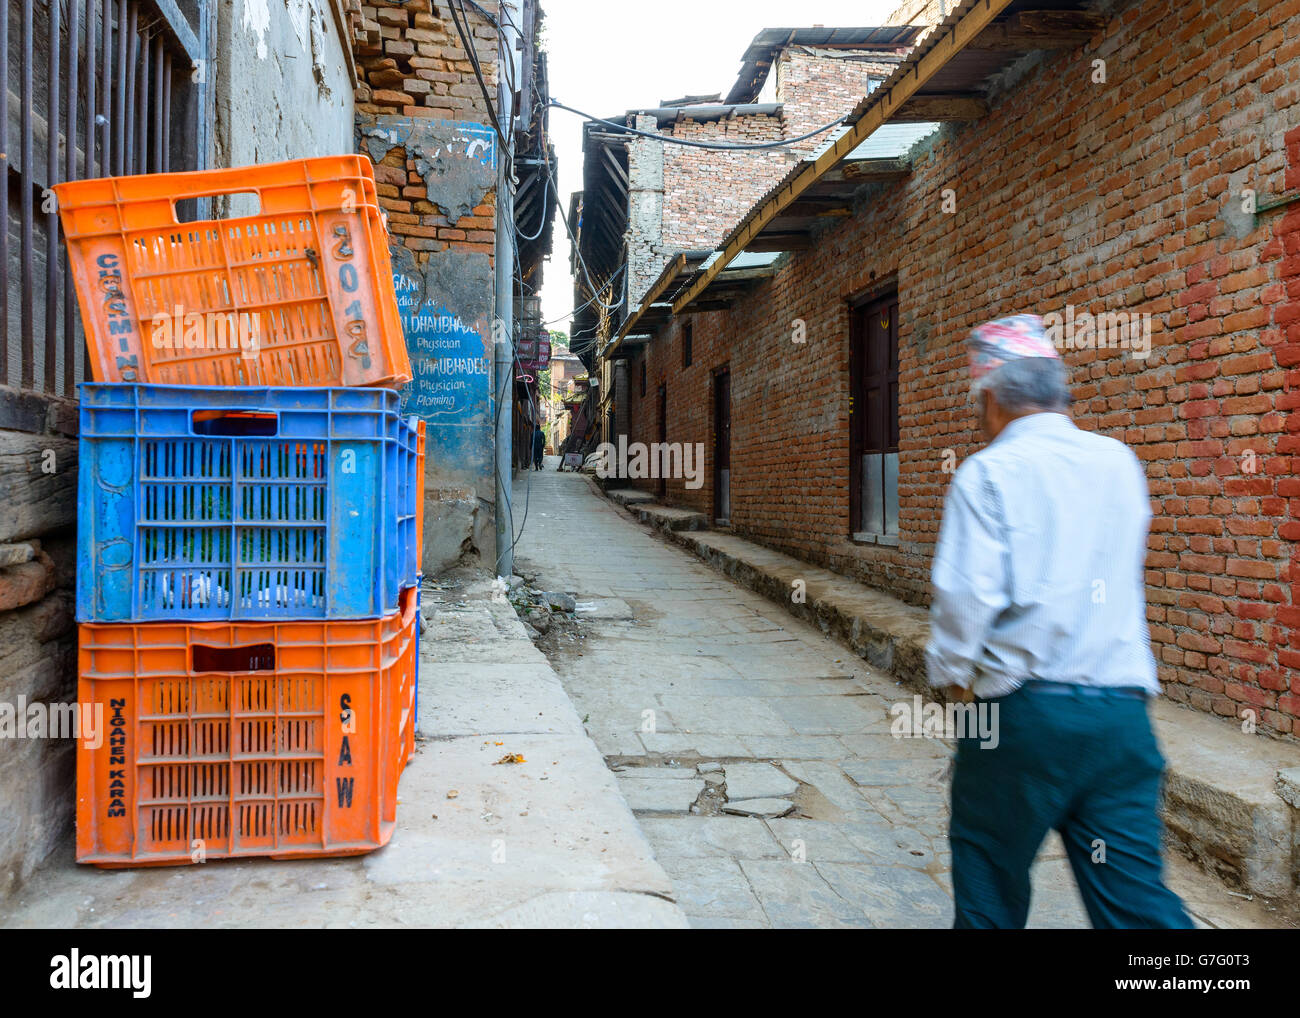 Nepalese man wearing a topi walks down a small alley in Bhaktapur, Nepal. - Stock Image